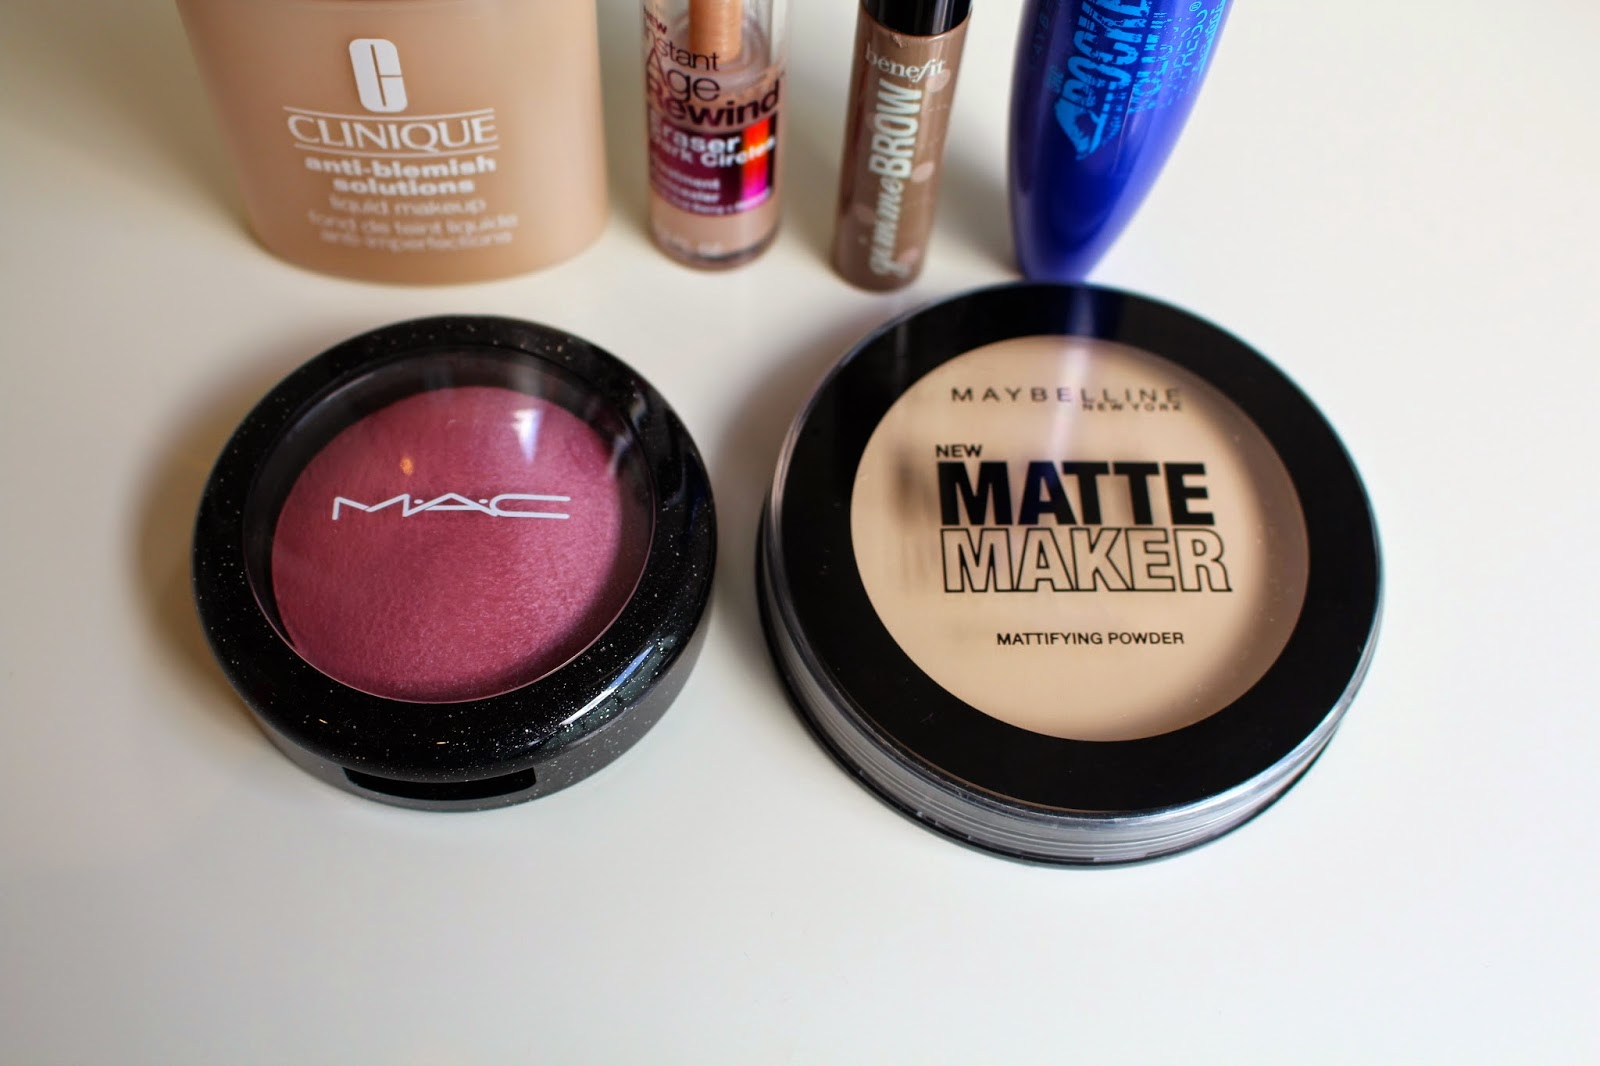 my everyday makeup routine, makeup routine, clinique anti-blemish solutions foundation, maybelline instant age rewind eraser dark circles, benefit gimme brow, maybelline the rocket, mac sweet sentiment blush, maybelline matte maker powder